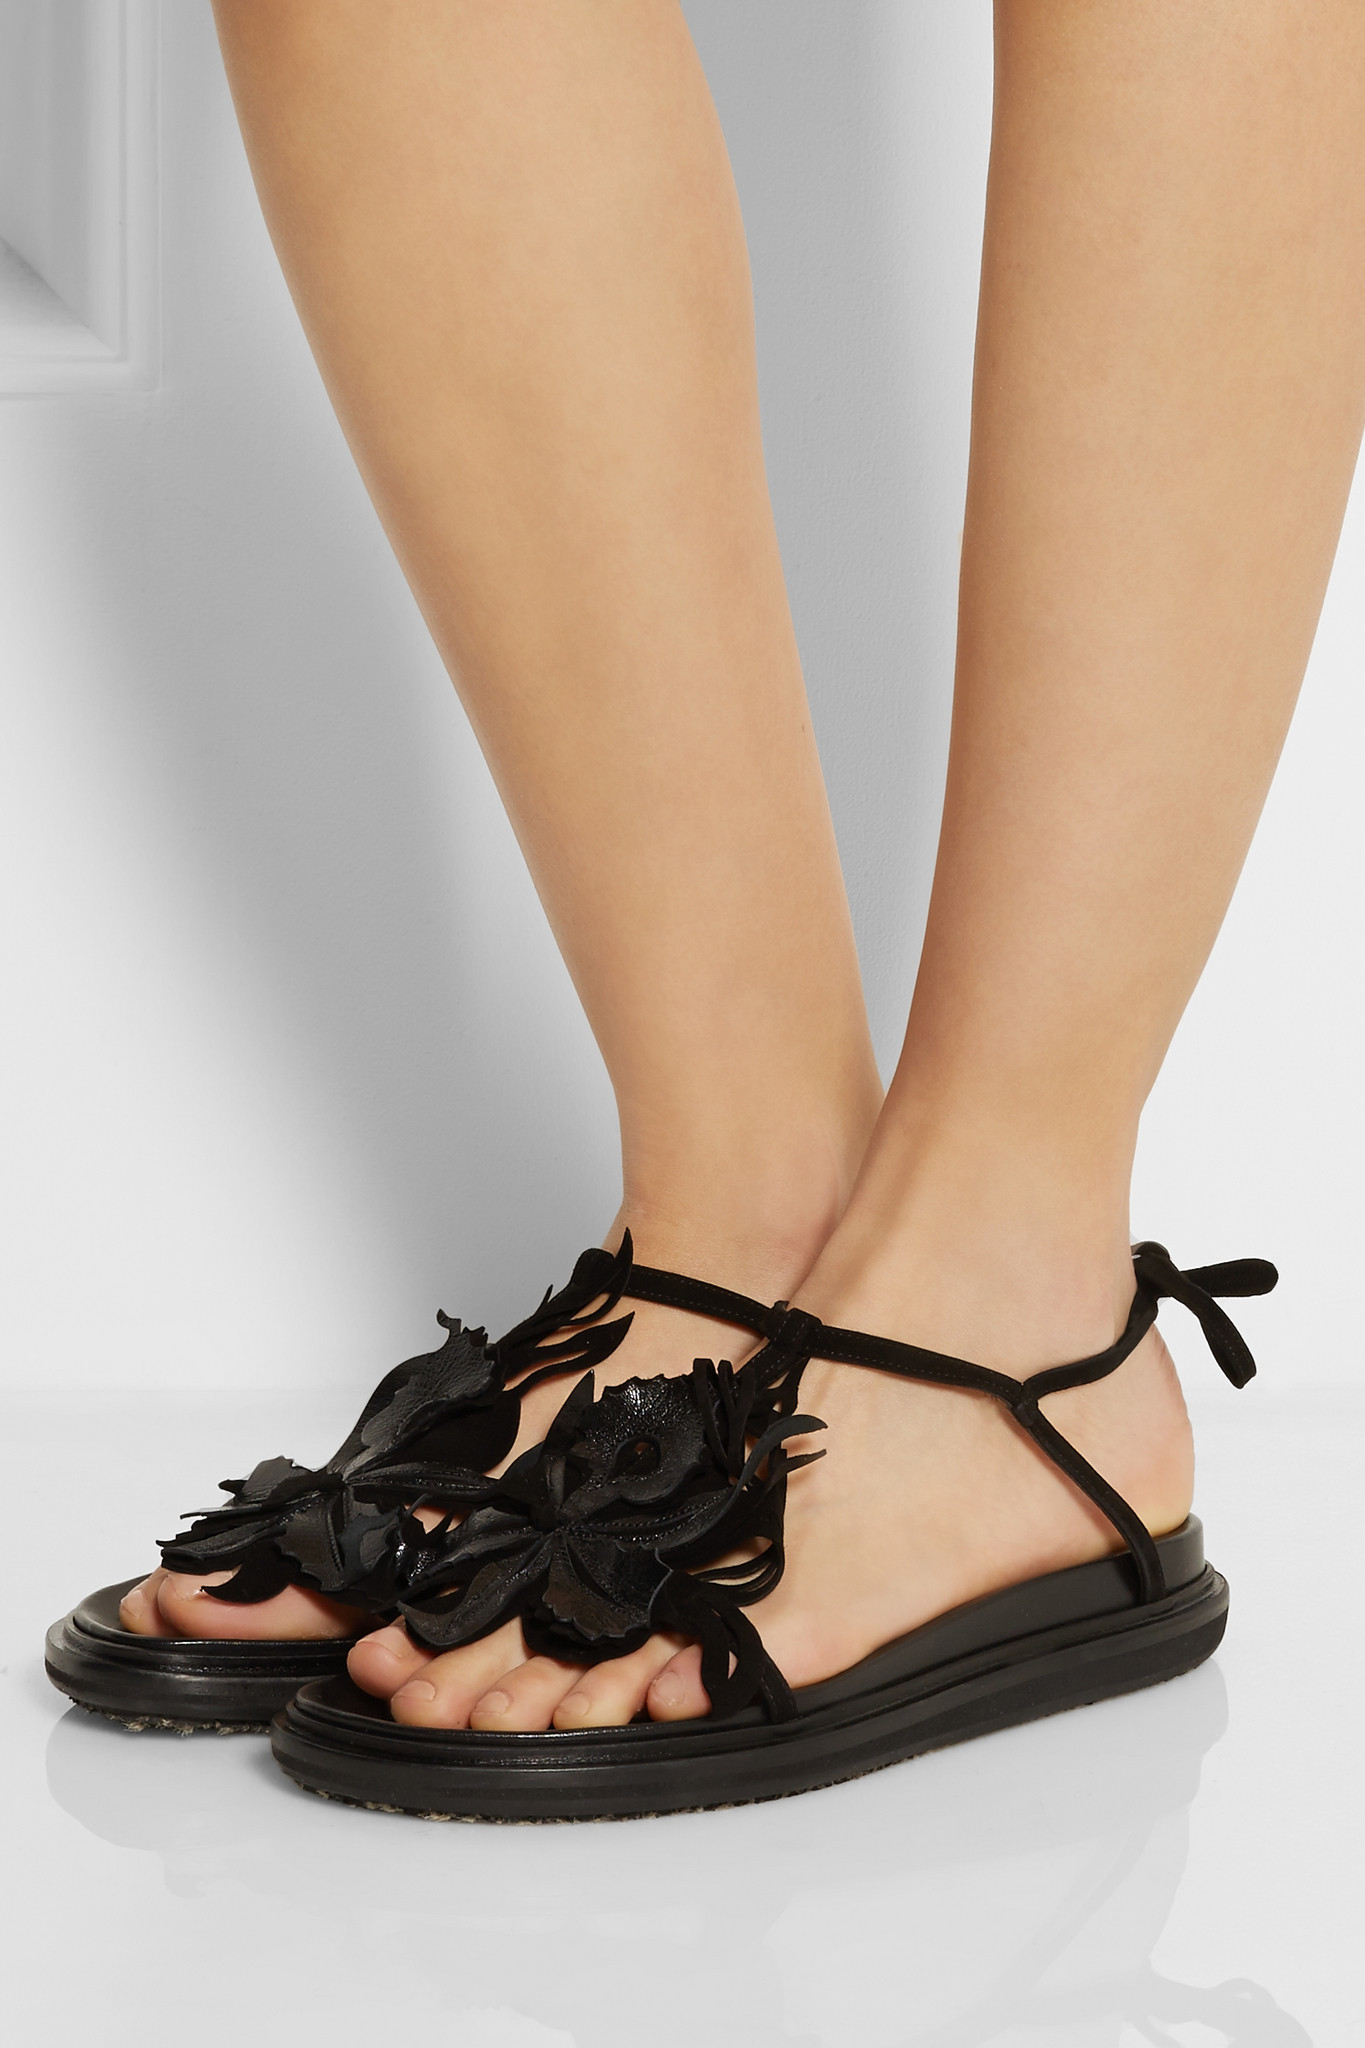 648e9004be9cc Marni Embellished Leather And Suede Sandals in Black - Lyst